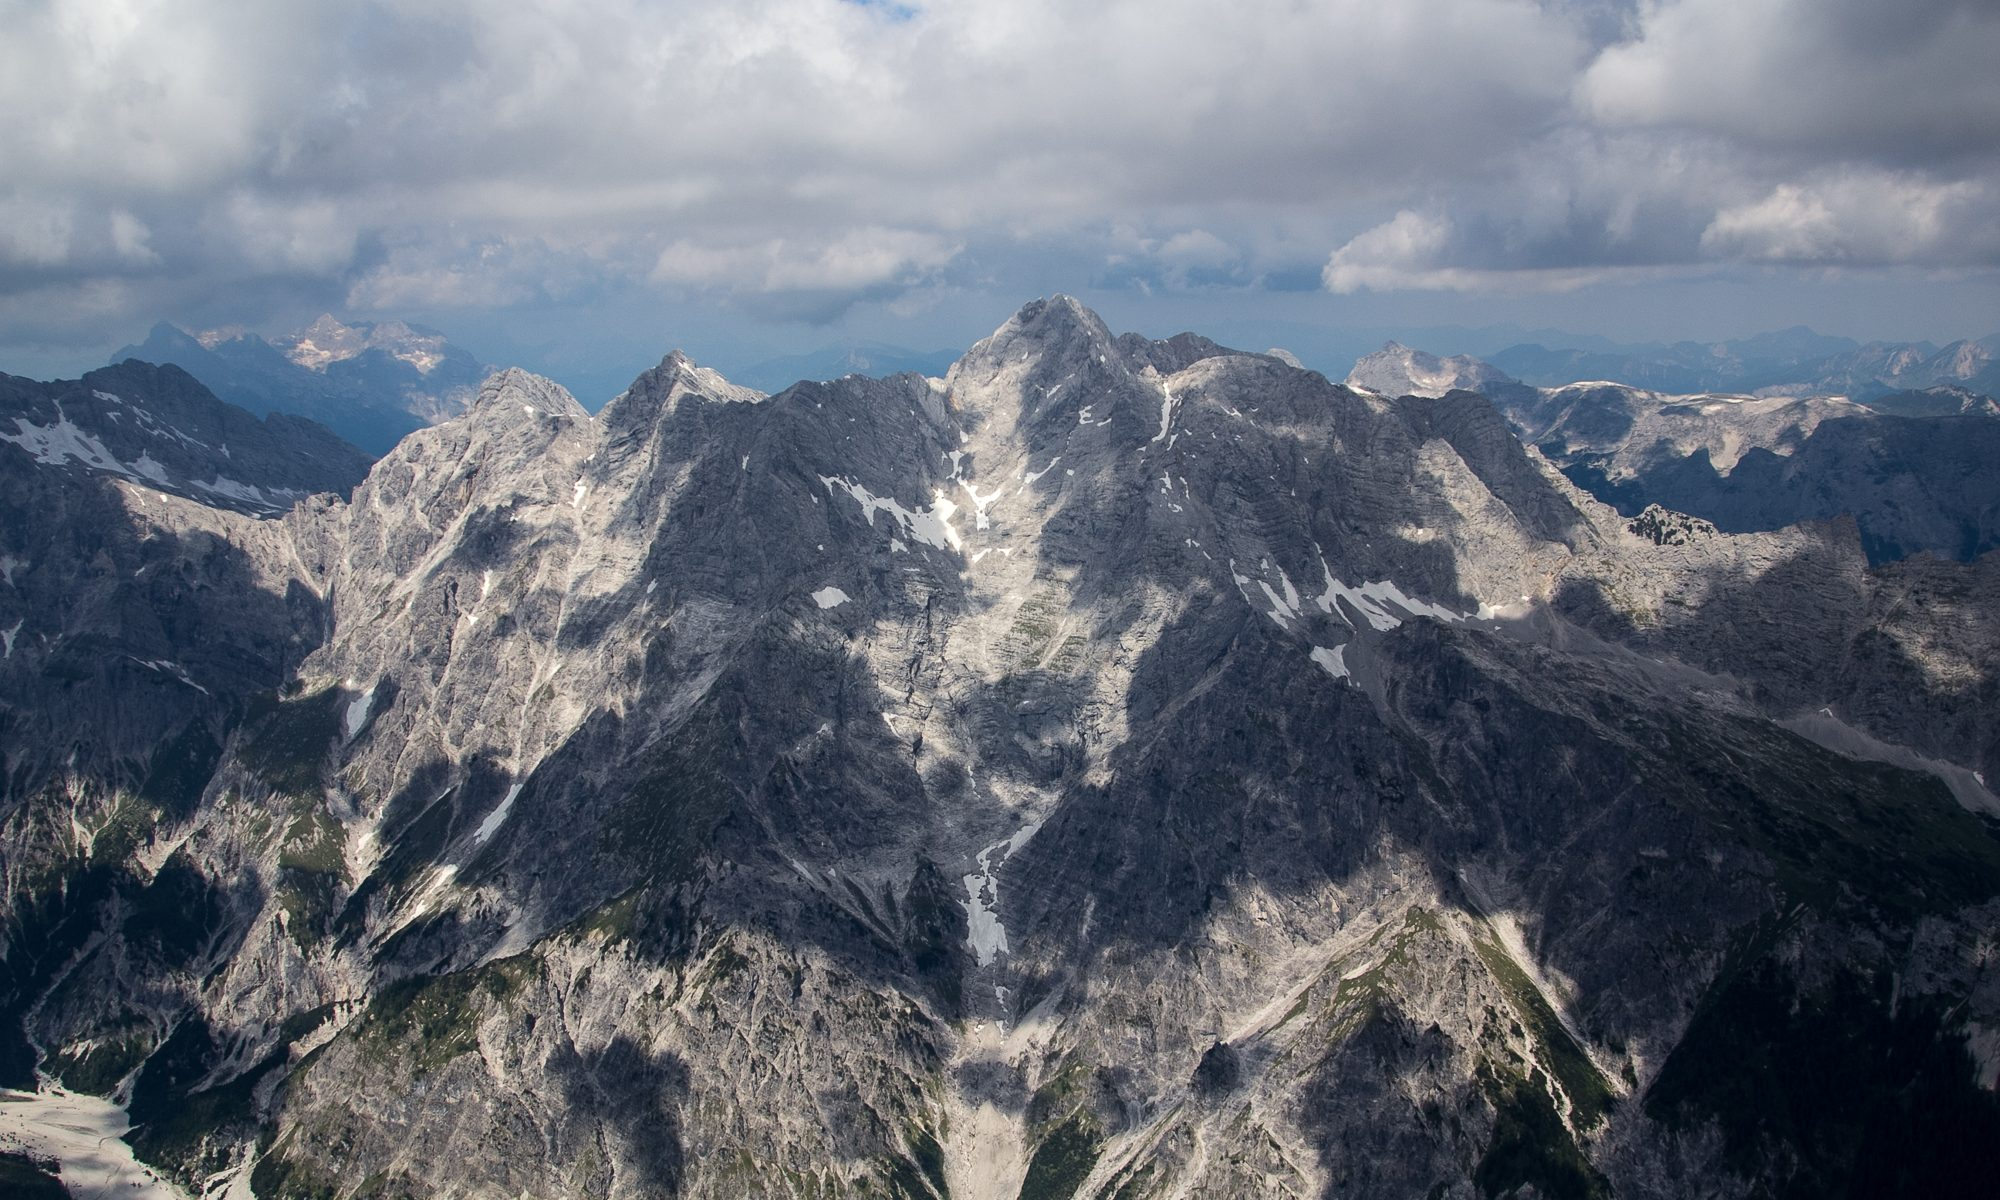 Dramatic sky seen from the Watzmann ridge in the Bavarian Alps